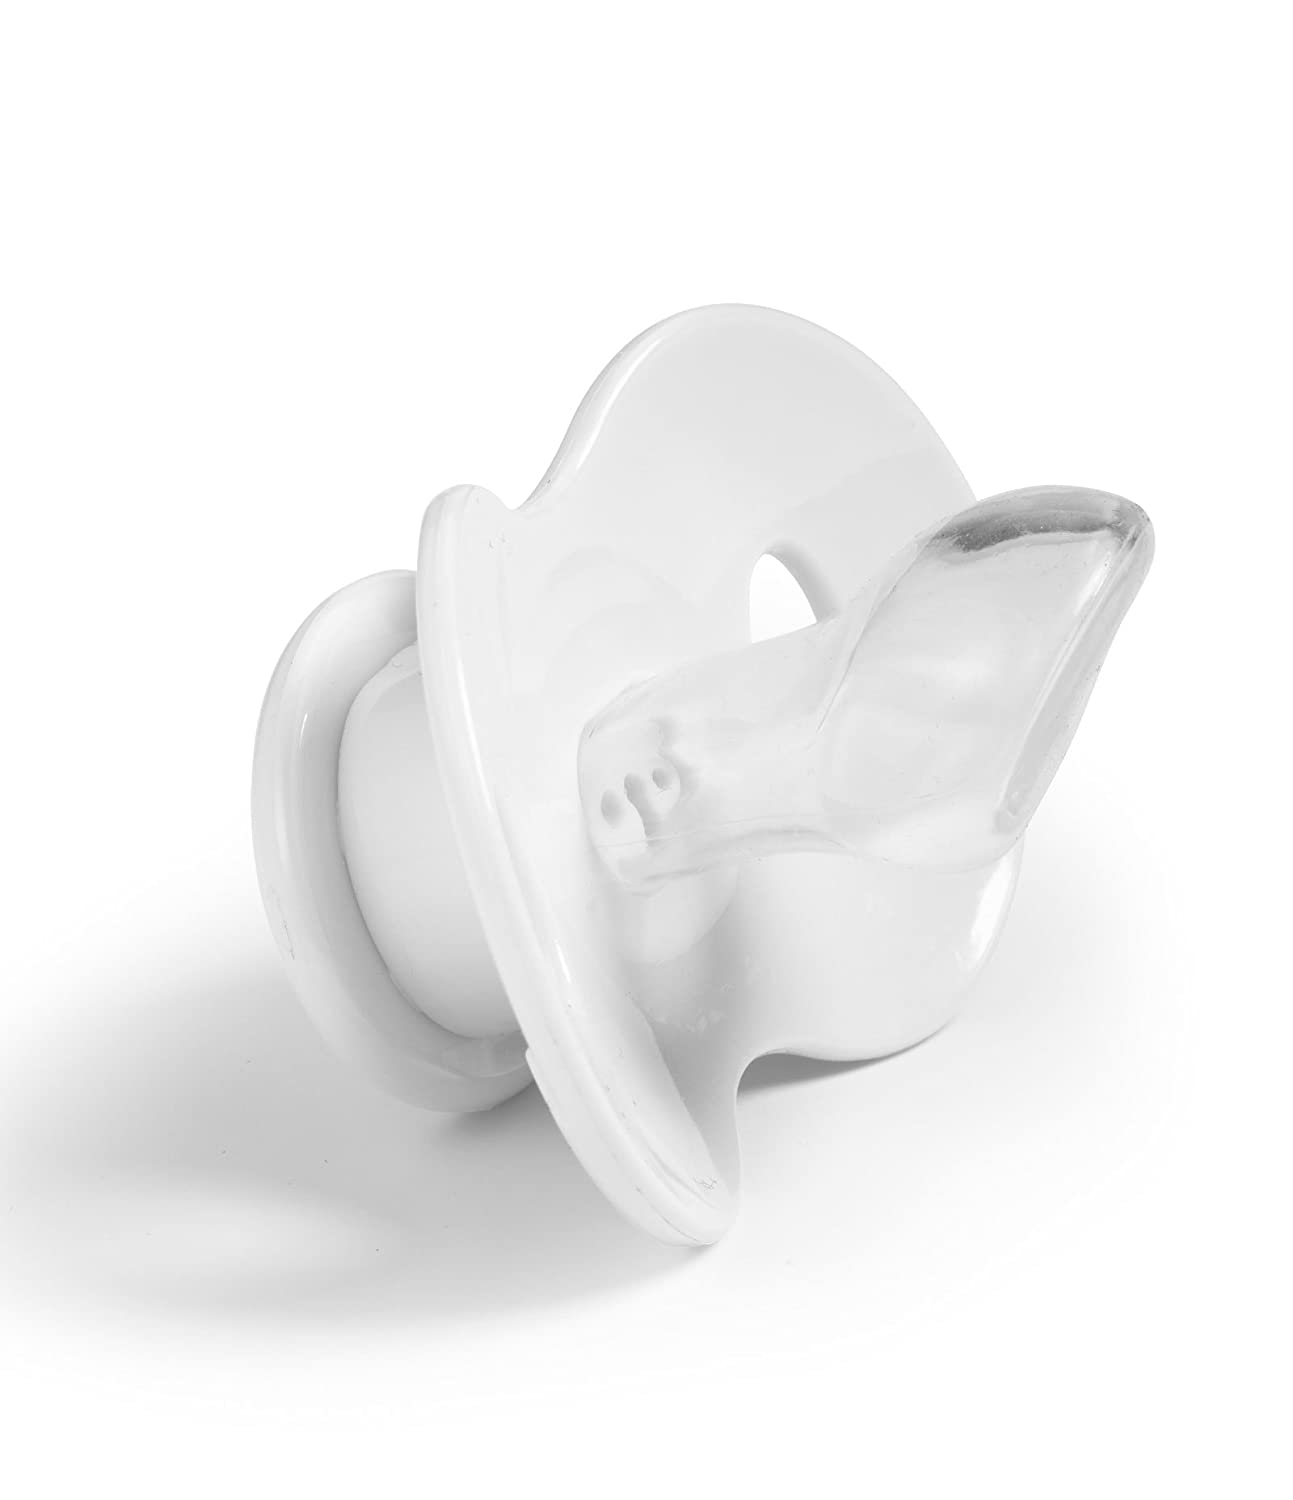 Elodie Details Mini Pacifier, 0-3 Months, Happiness is Born 103085